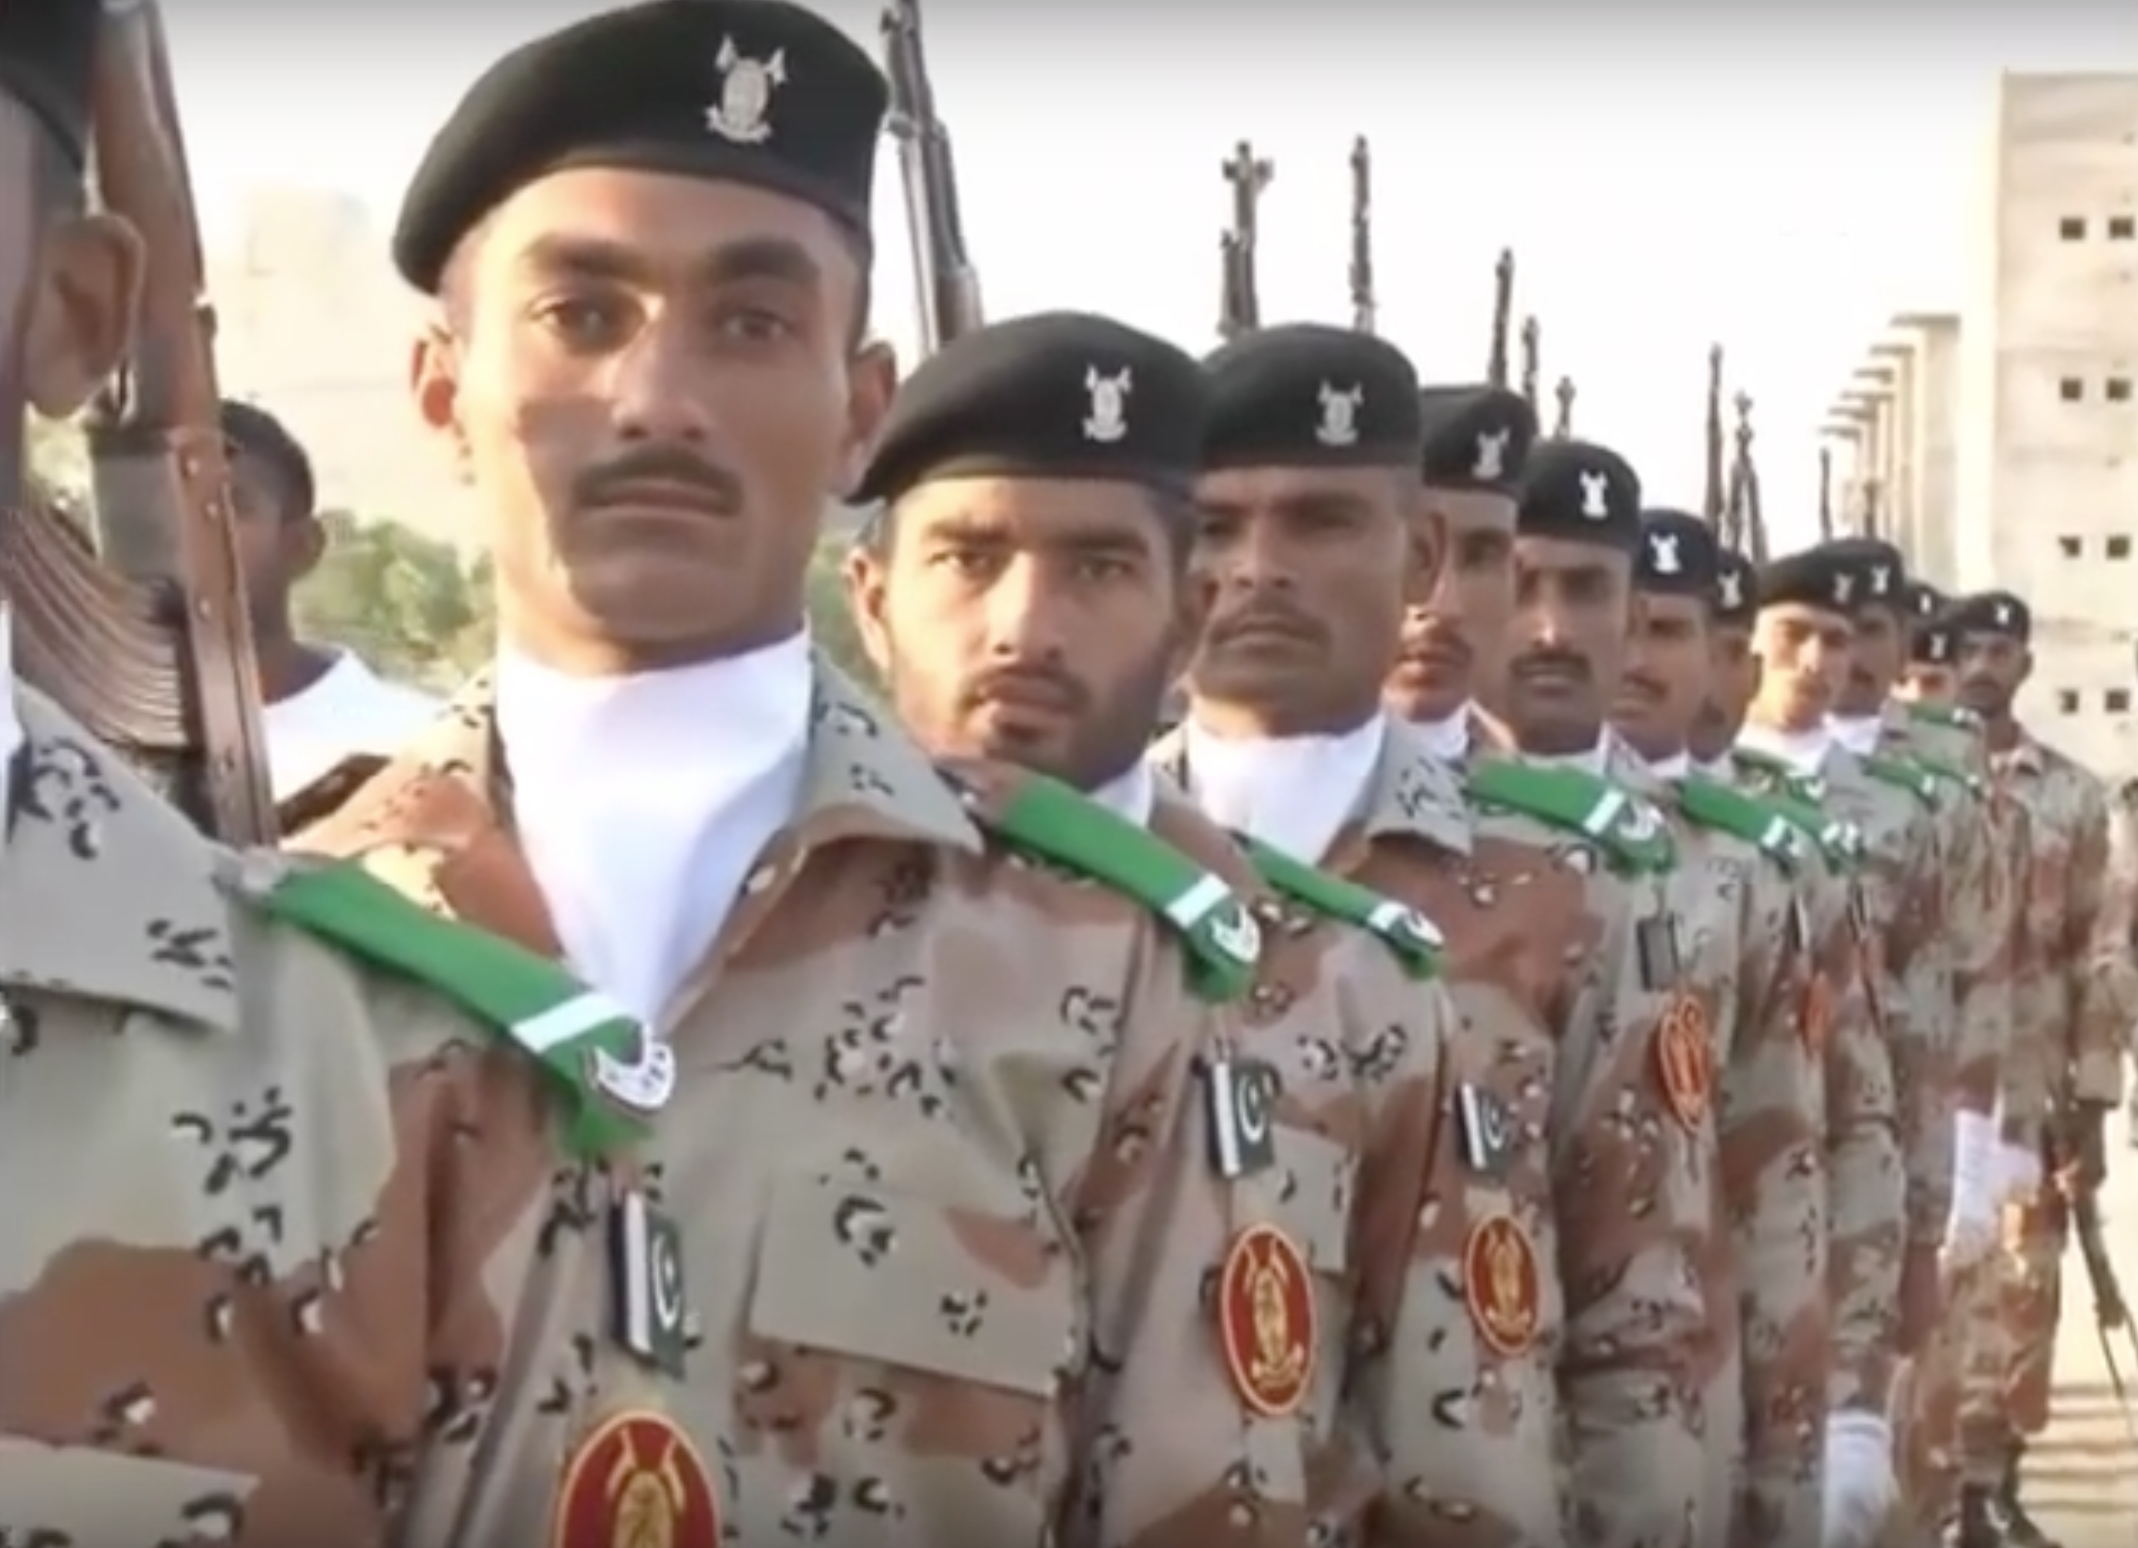 Expectations high Rangers will stem uptick in militant attacks in Punjab